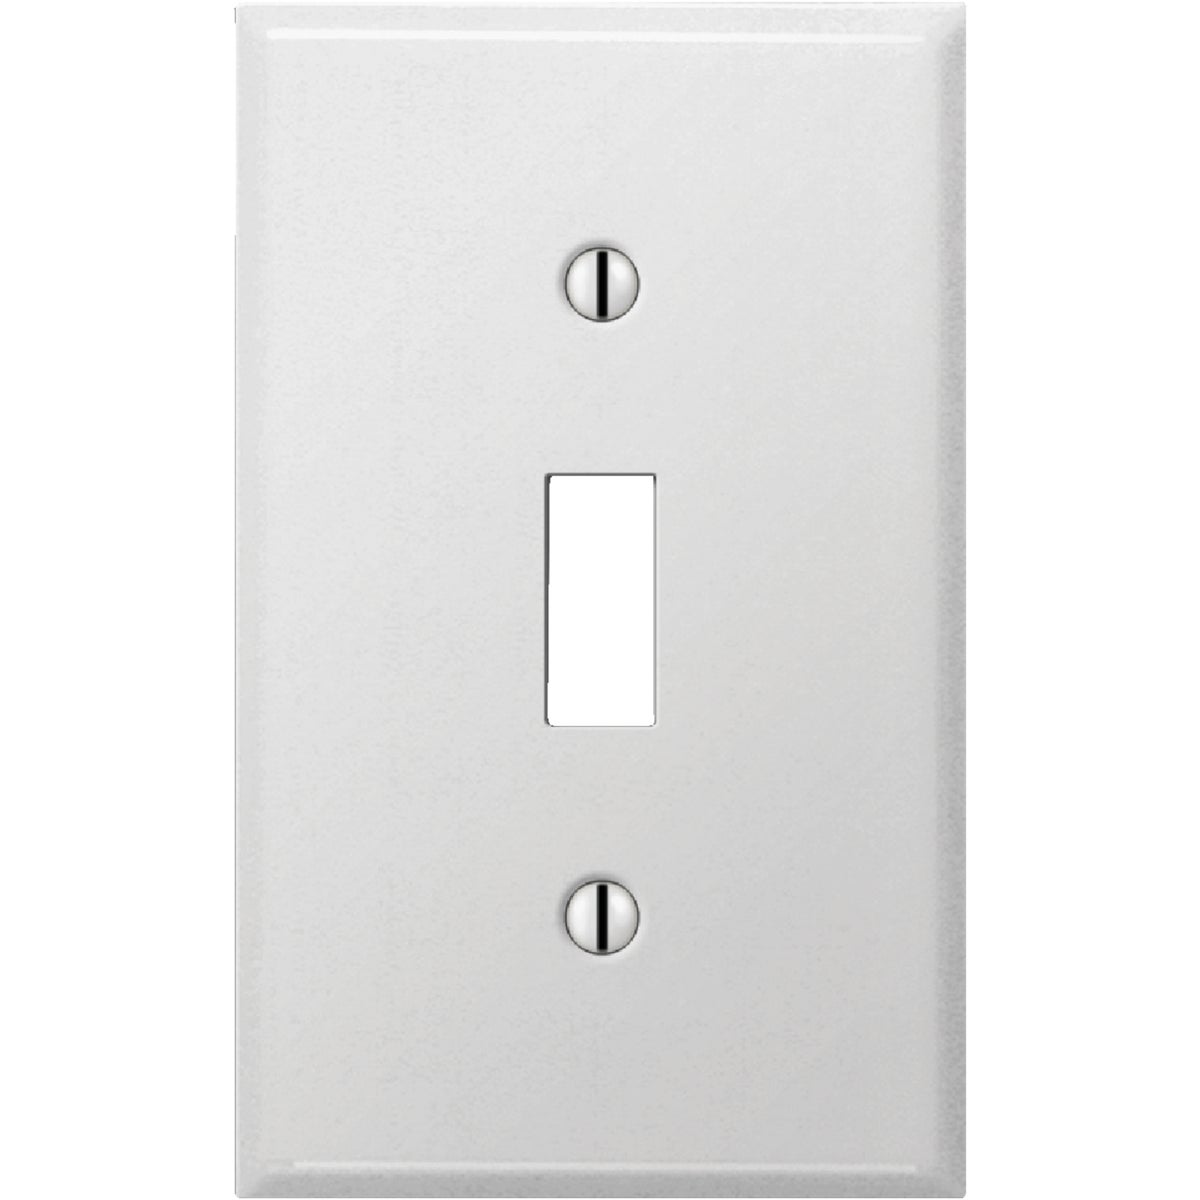 WHT SWITCH WALL PLATE